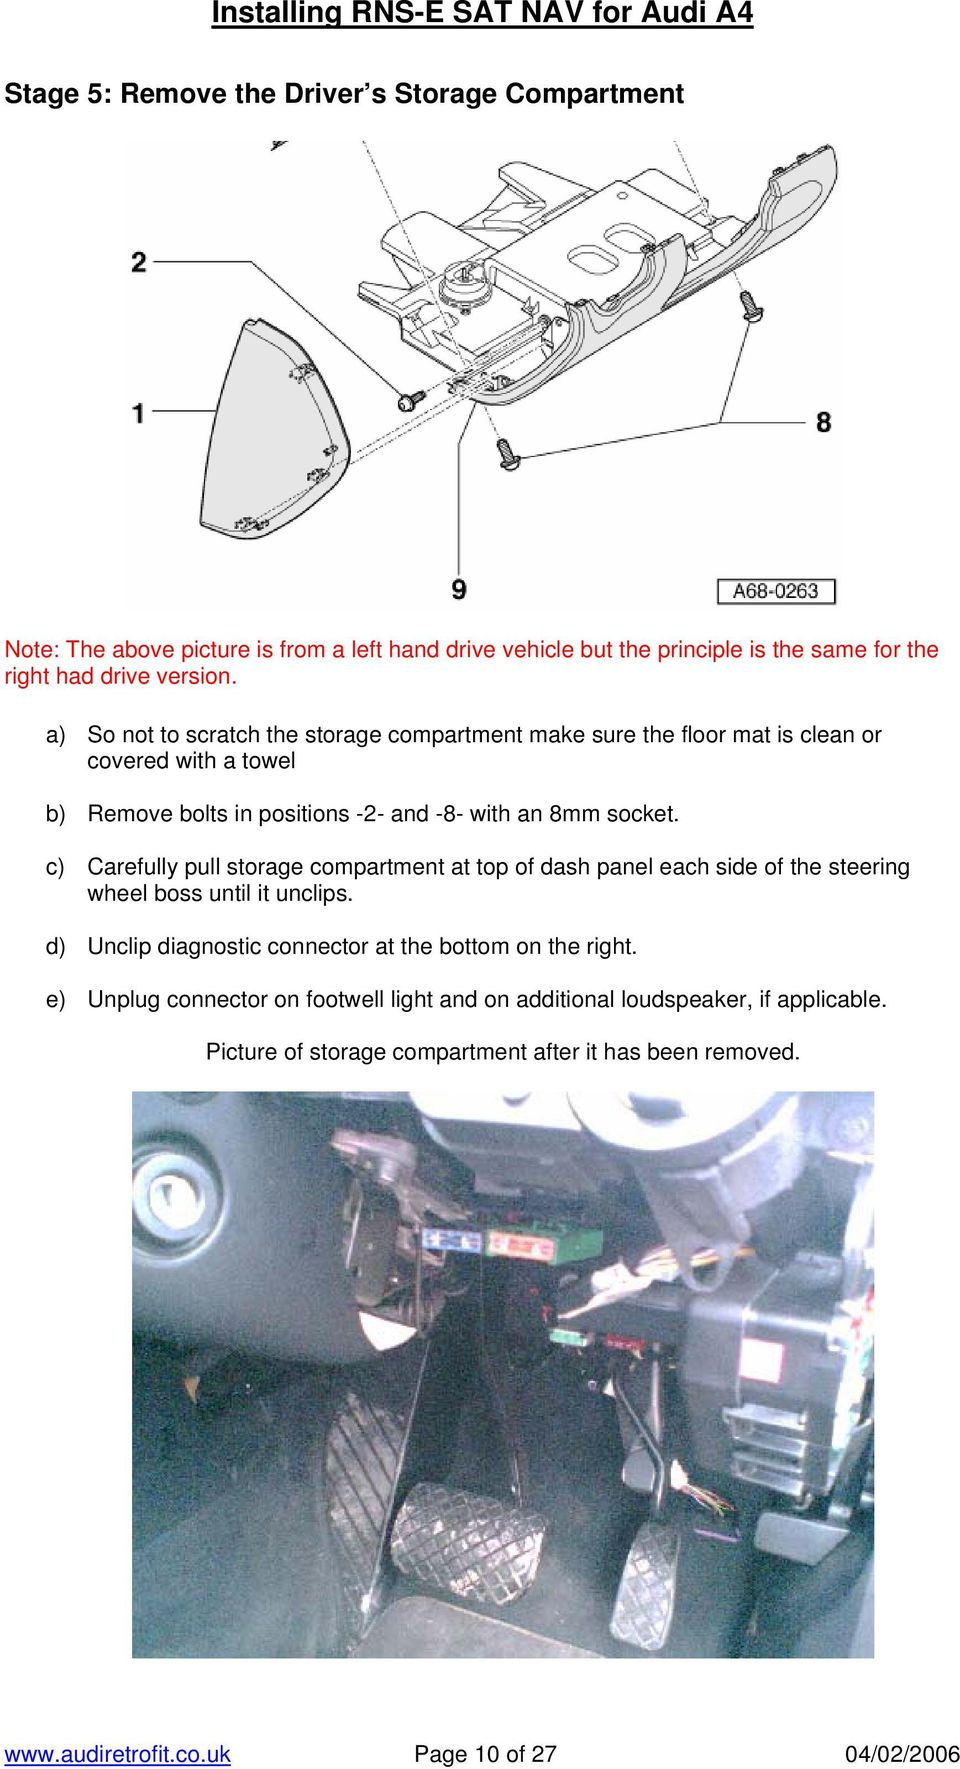 medium resolution of c carefully pull storage compartment at top of dash panel each side of the steering